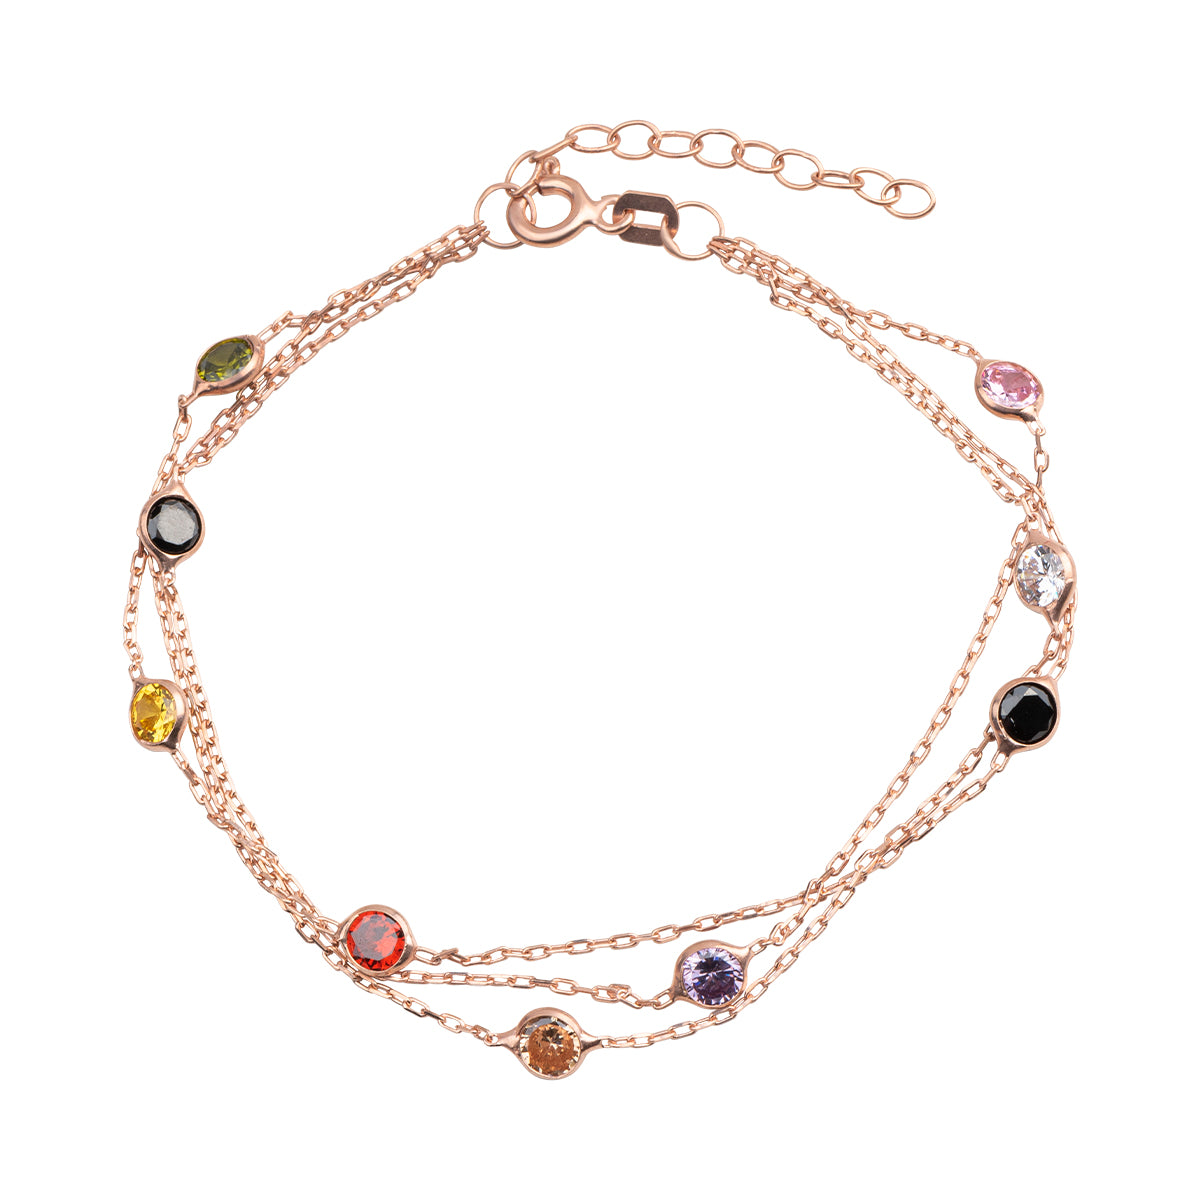 925 Sterling silver, rose gold plated layered chain bracelet with colorful beads.